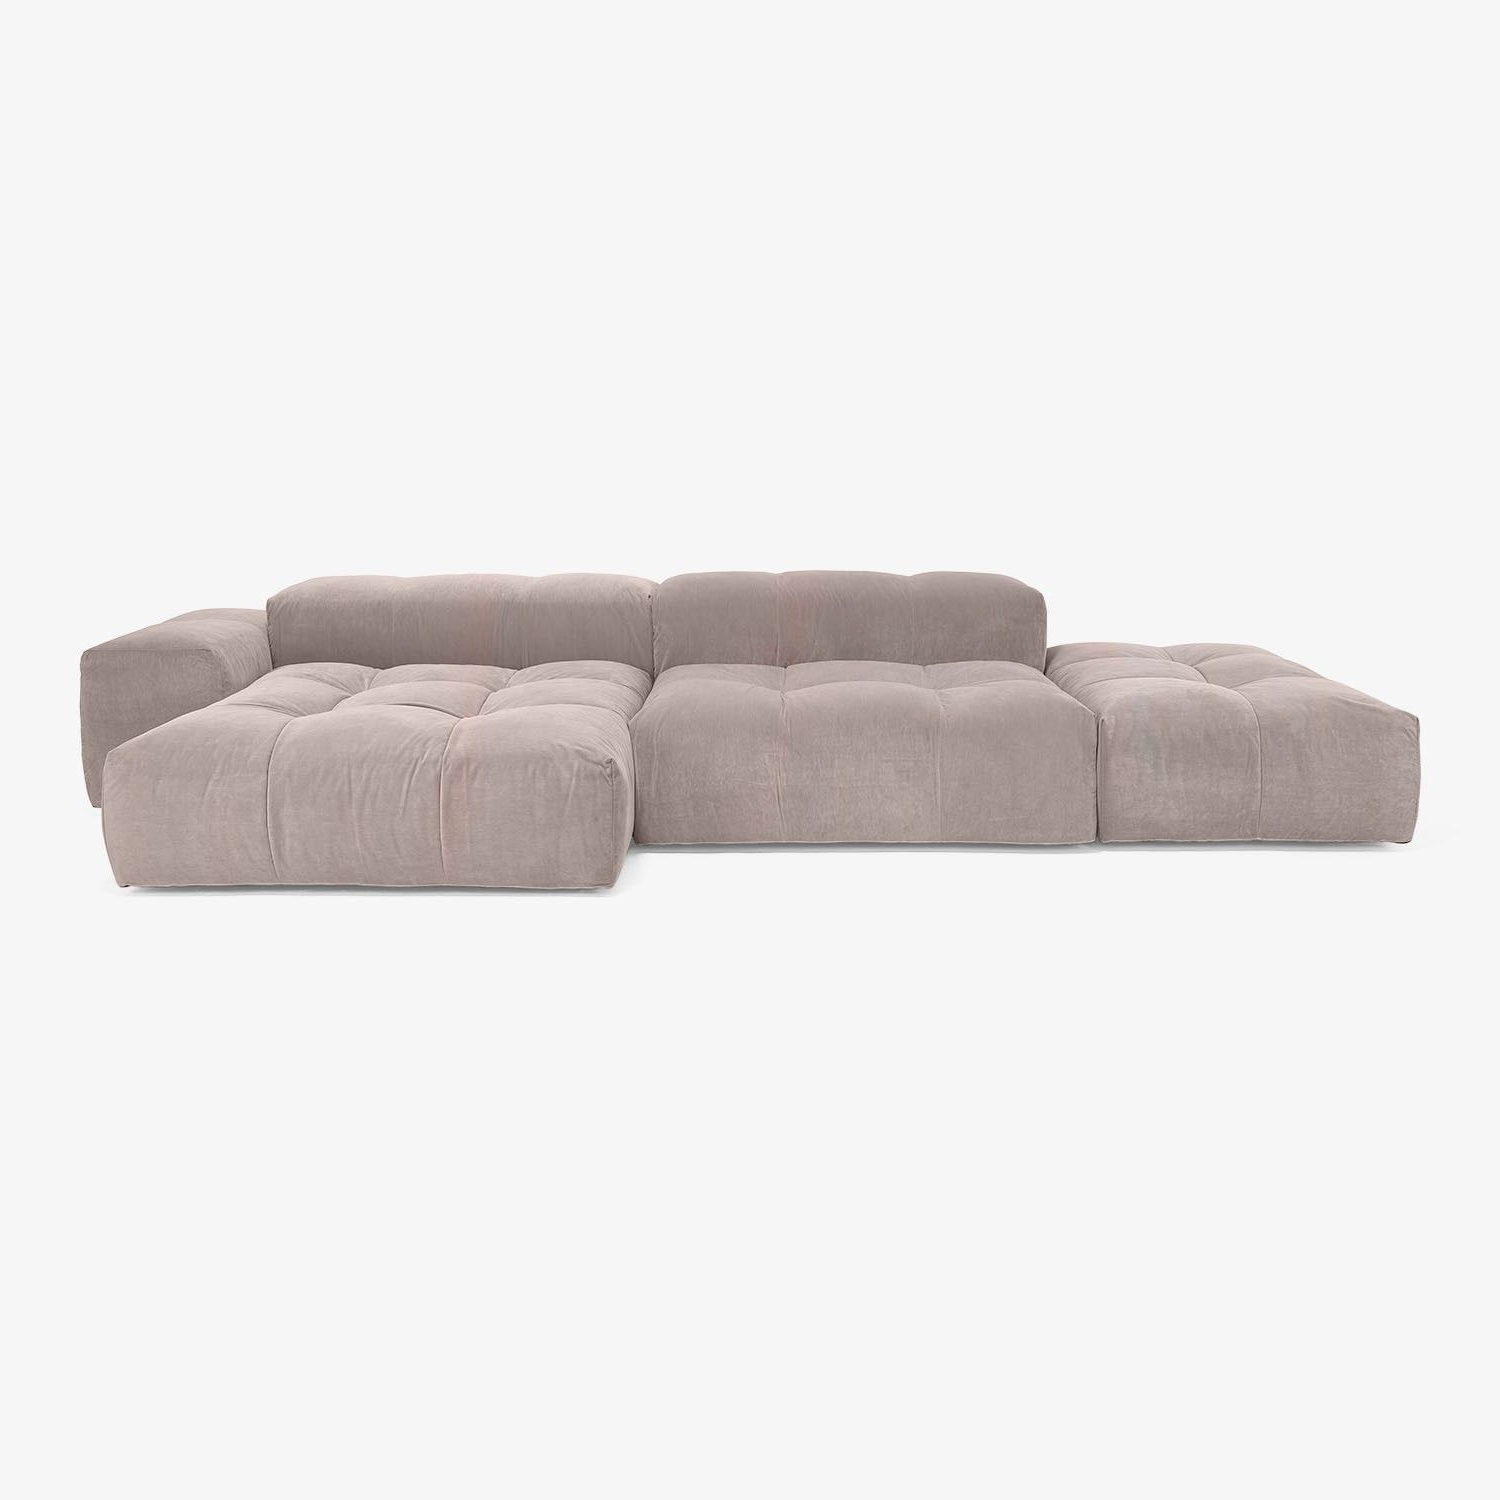 Modern Sectional Sofas For Apartments At Abc Home & Carpet With Most Up To Date Harper Down 3 Piece Sectionals (View 20 of 20)